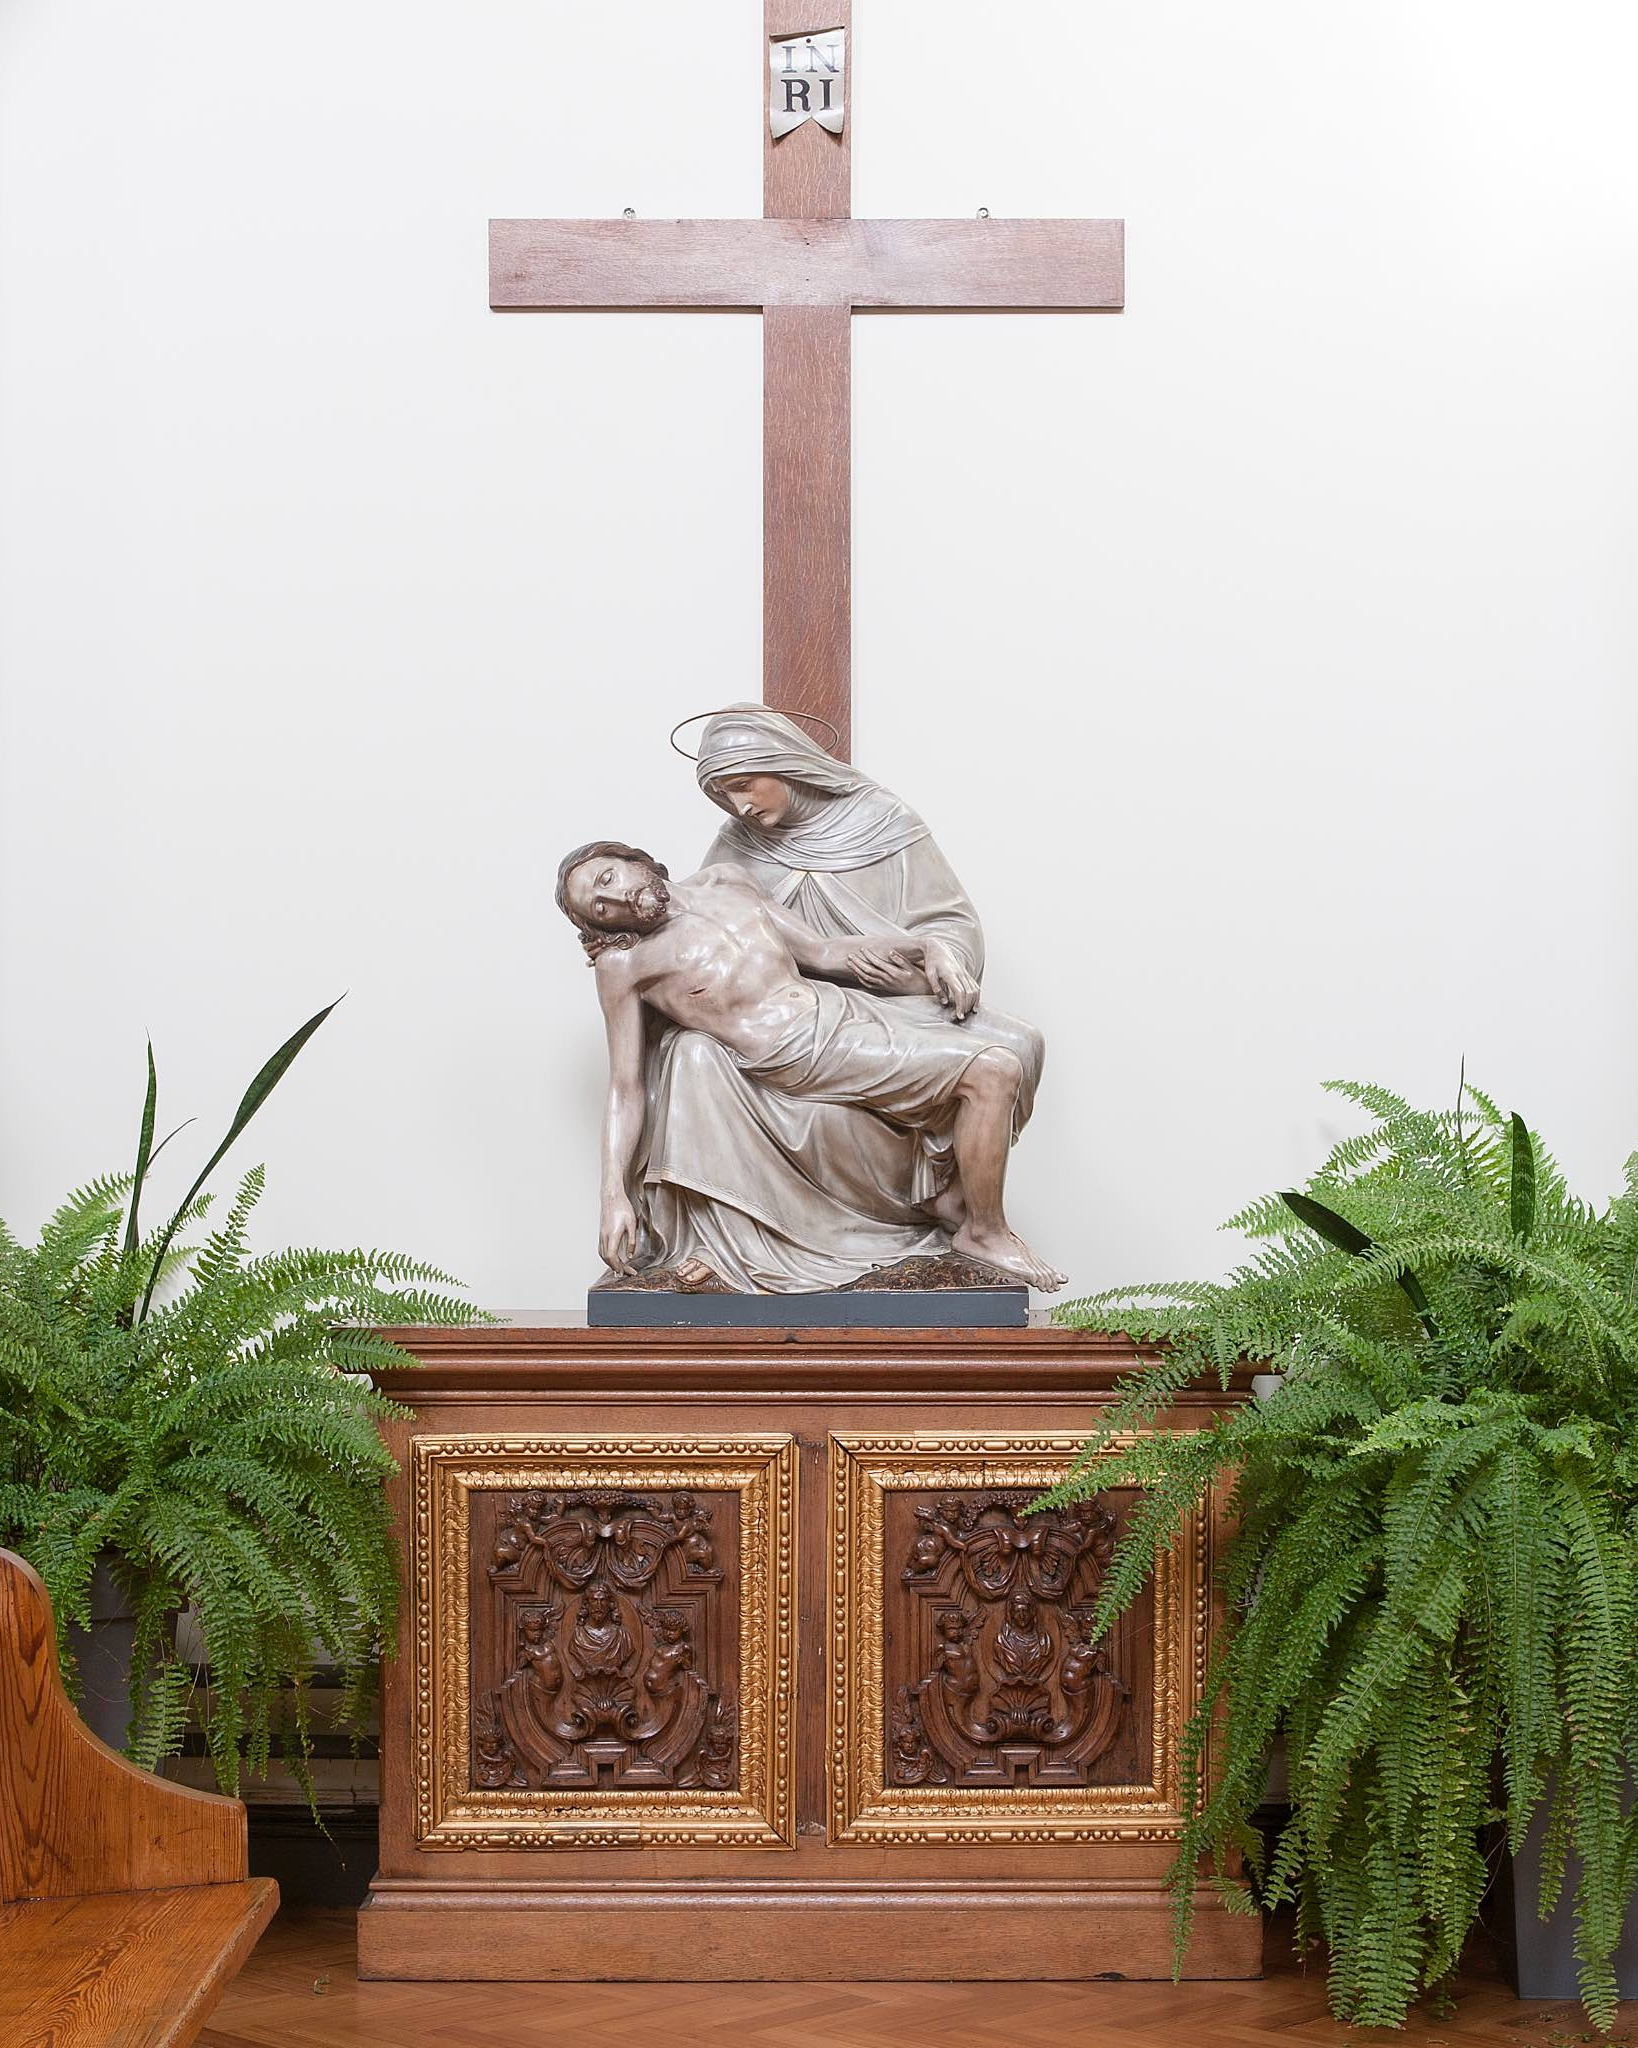 The Pieta - One of the most familiar subjects in Christian art is the body of the crucified Christ laid in the arms of his mother, Mary, the most famous example of which is that by Michelangelo, in St. Peter's Basilica.